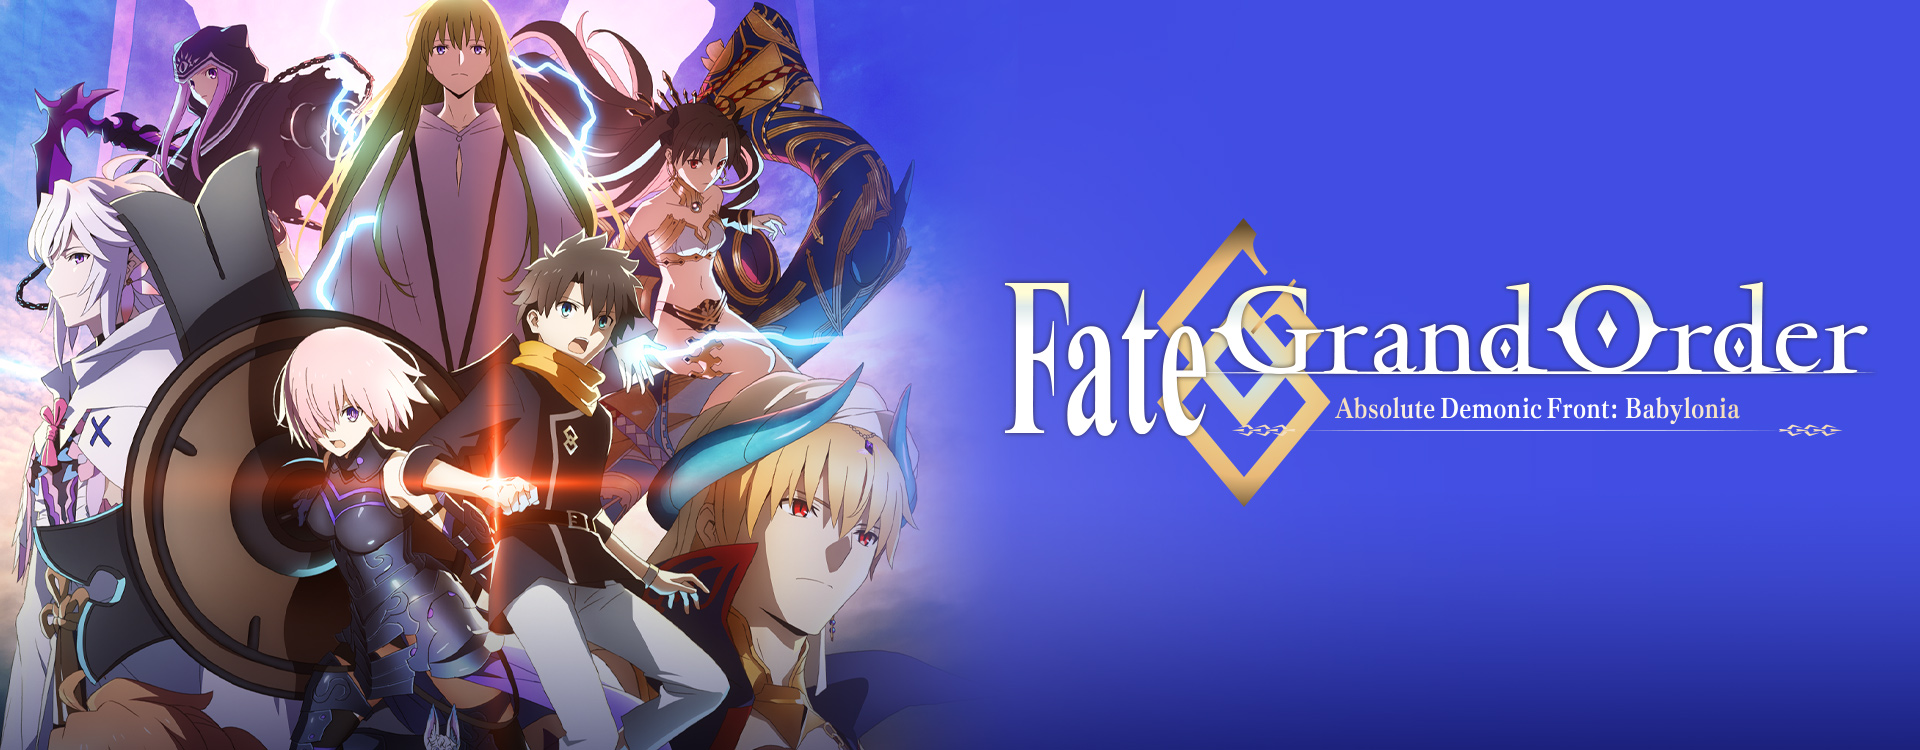 Featured image for Fate/Grand Order Absolute Demonic Front: Babylonia Review